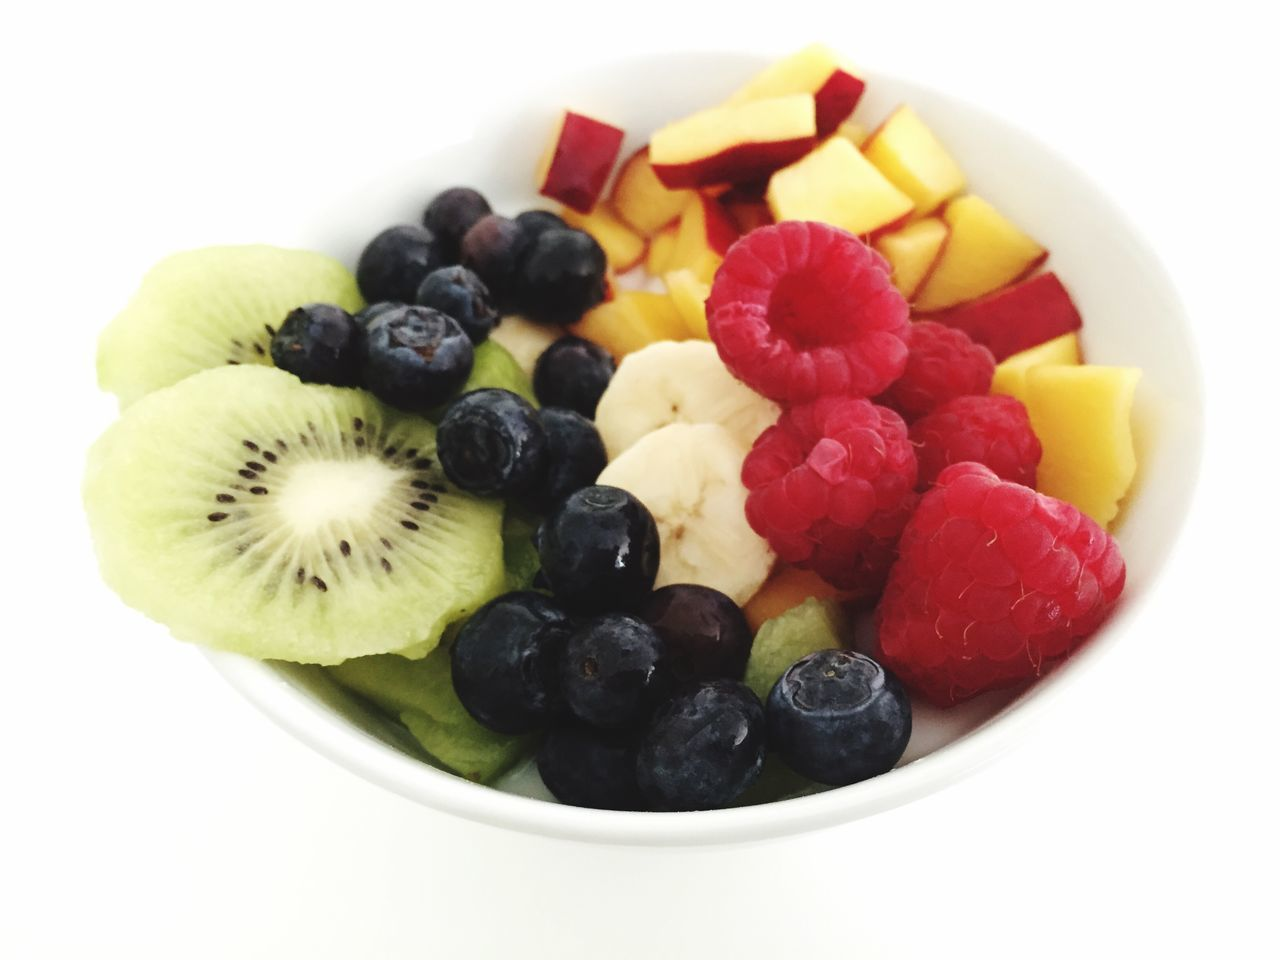 Close-Up Of Fruits In Bowl Over White Background